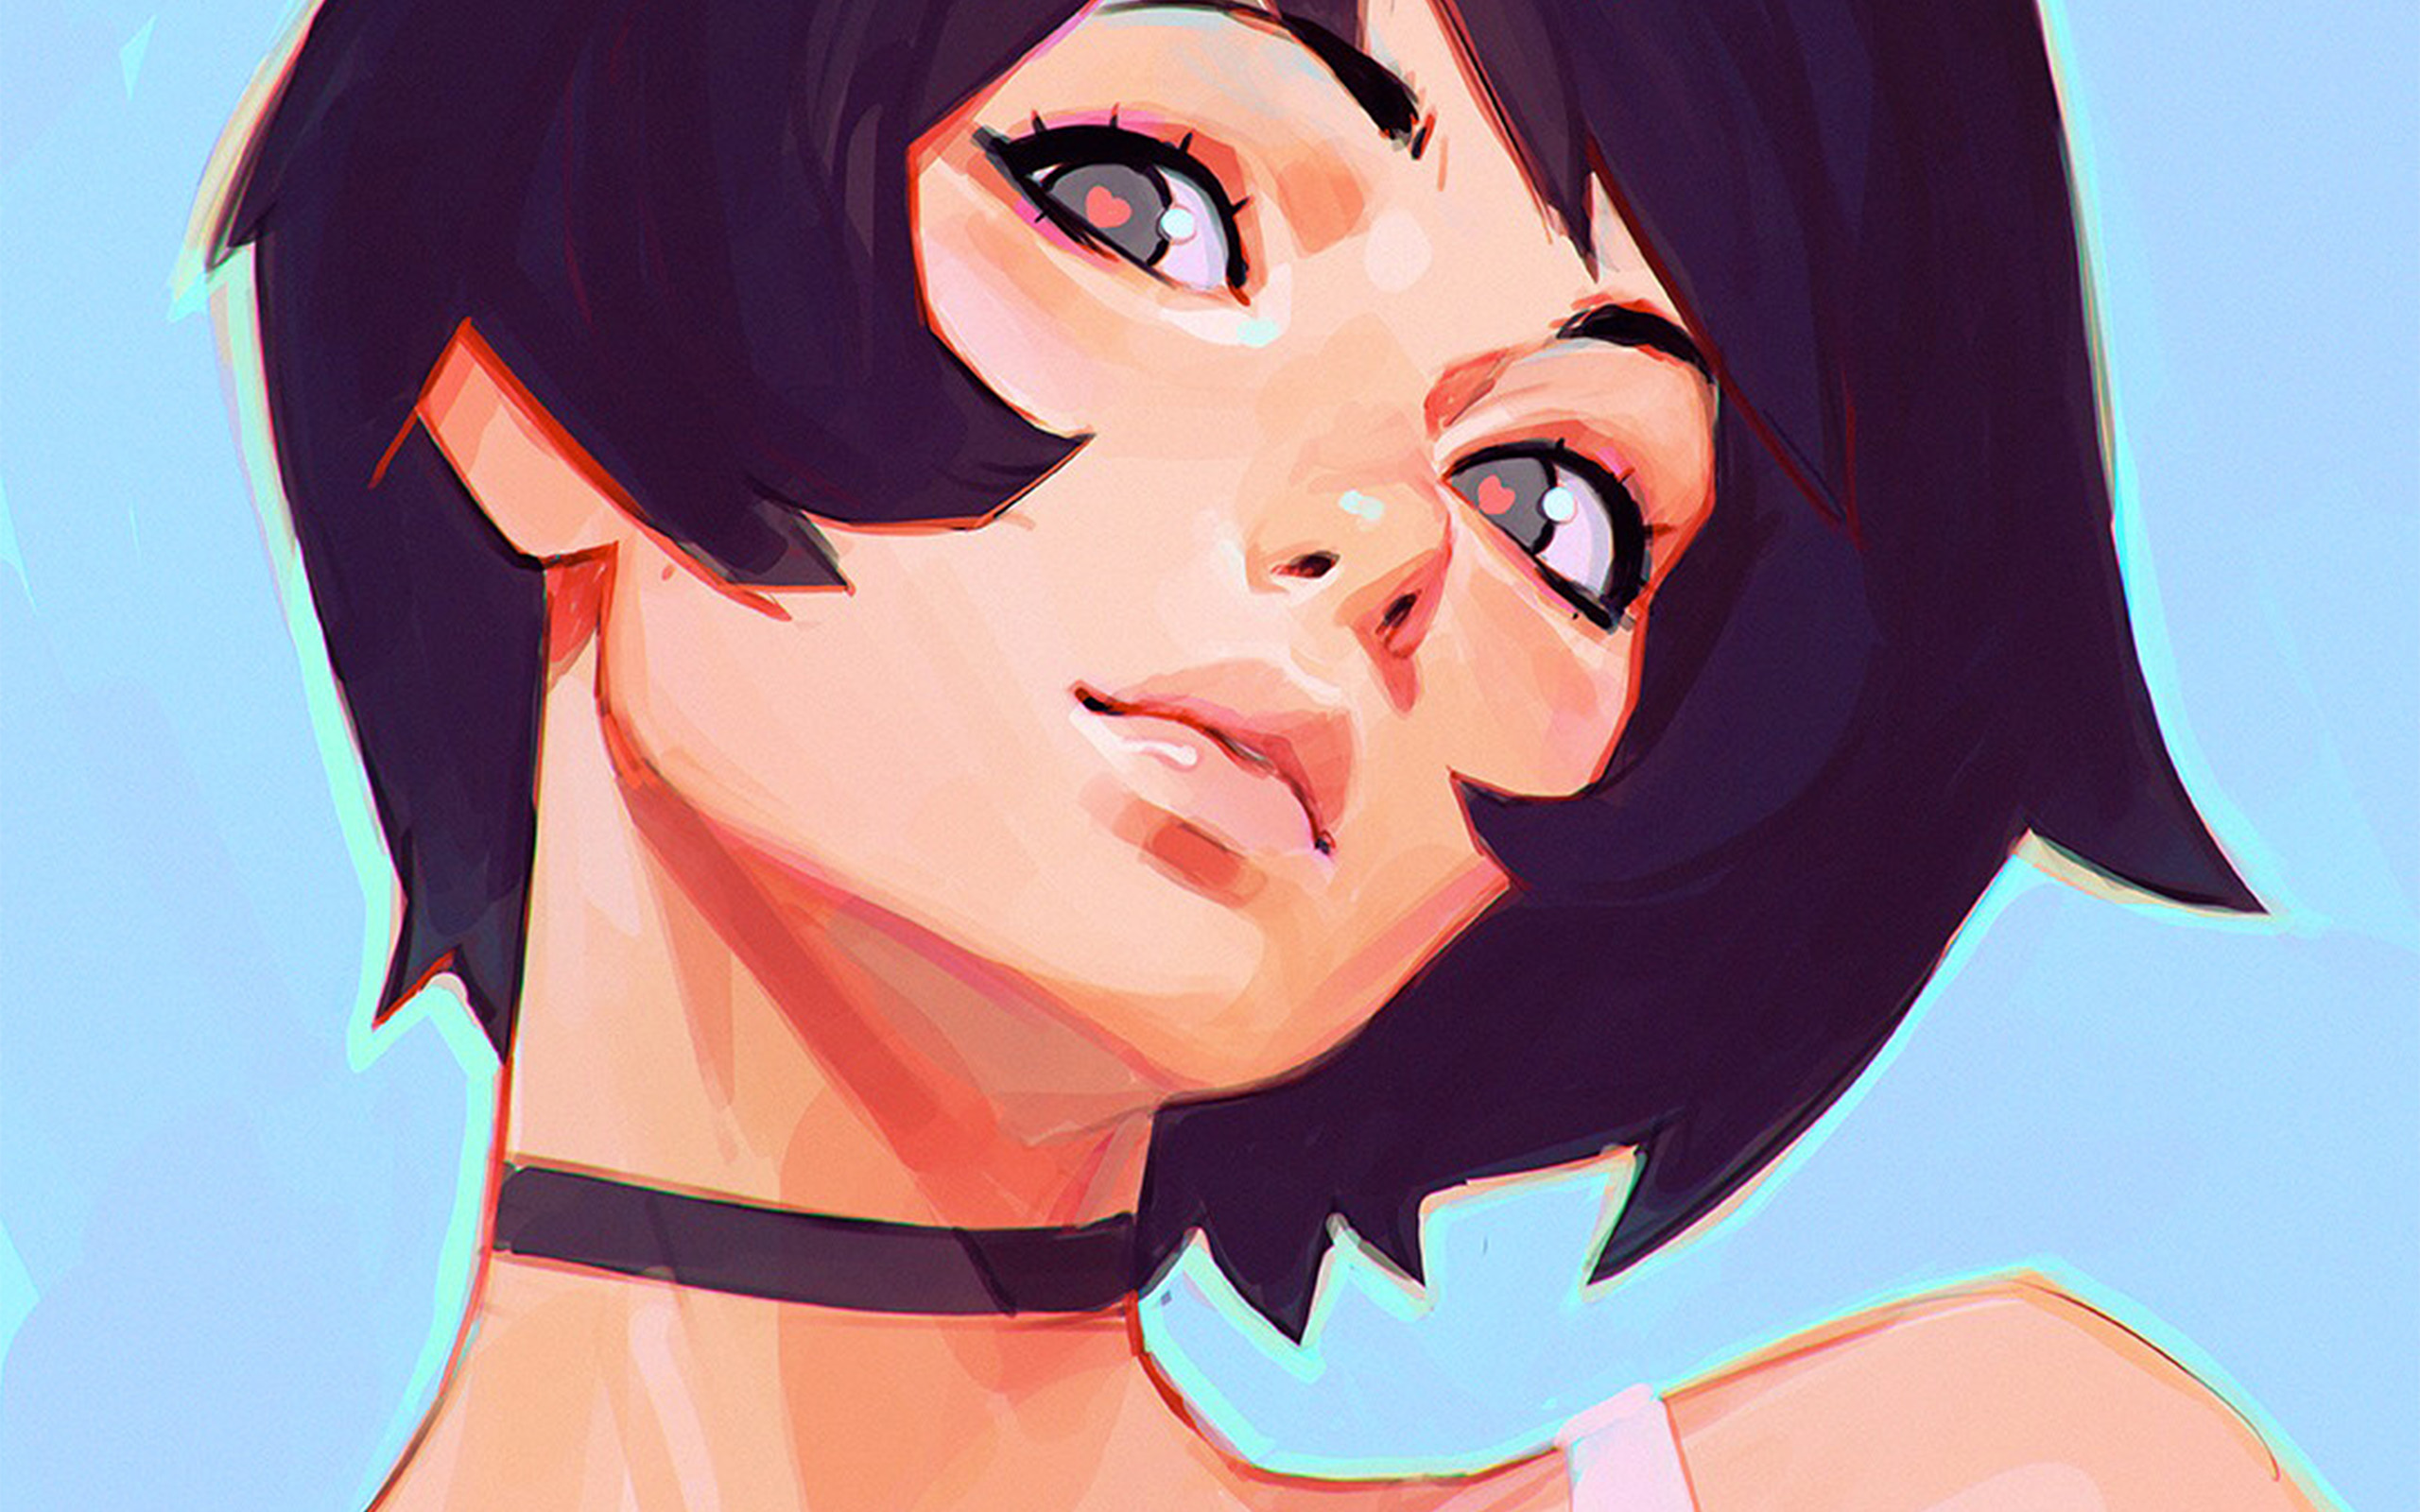 Anime Girl Hd Wallpaper For Android Az35 Girl Face Ilya Kuvshinov Illustration Art Wallpaper